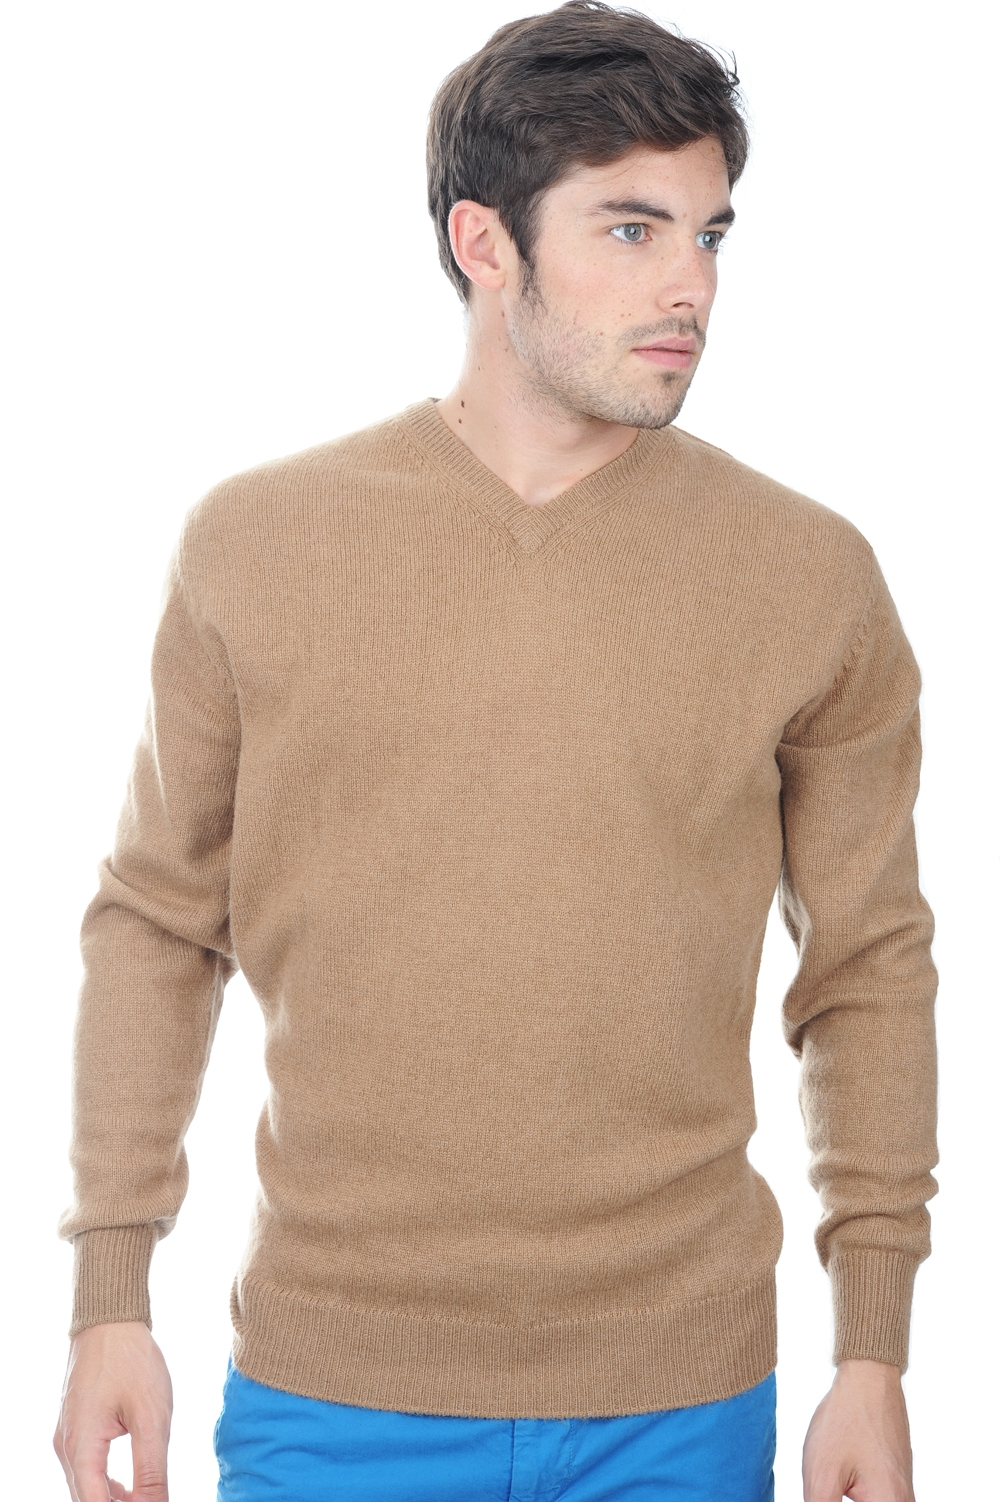 camel alpaca  camel camel for men camel gasp natural camel s